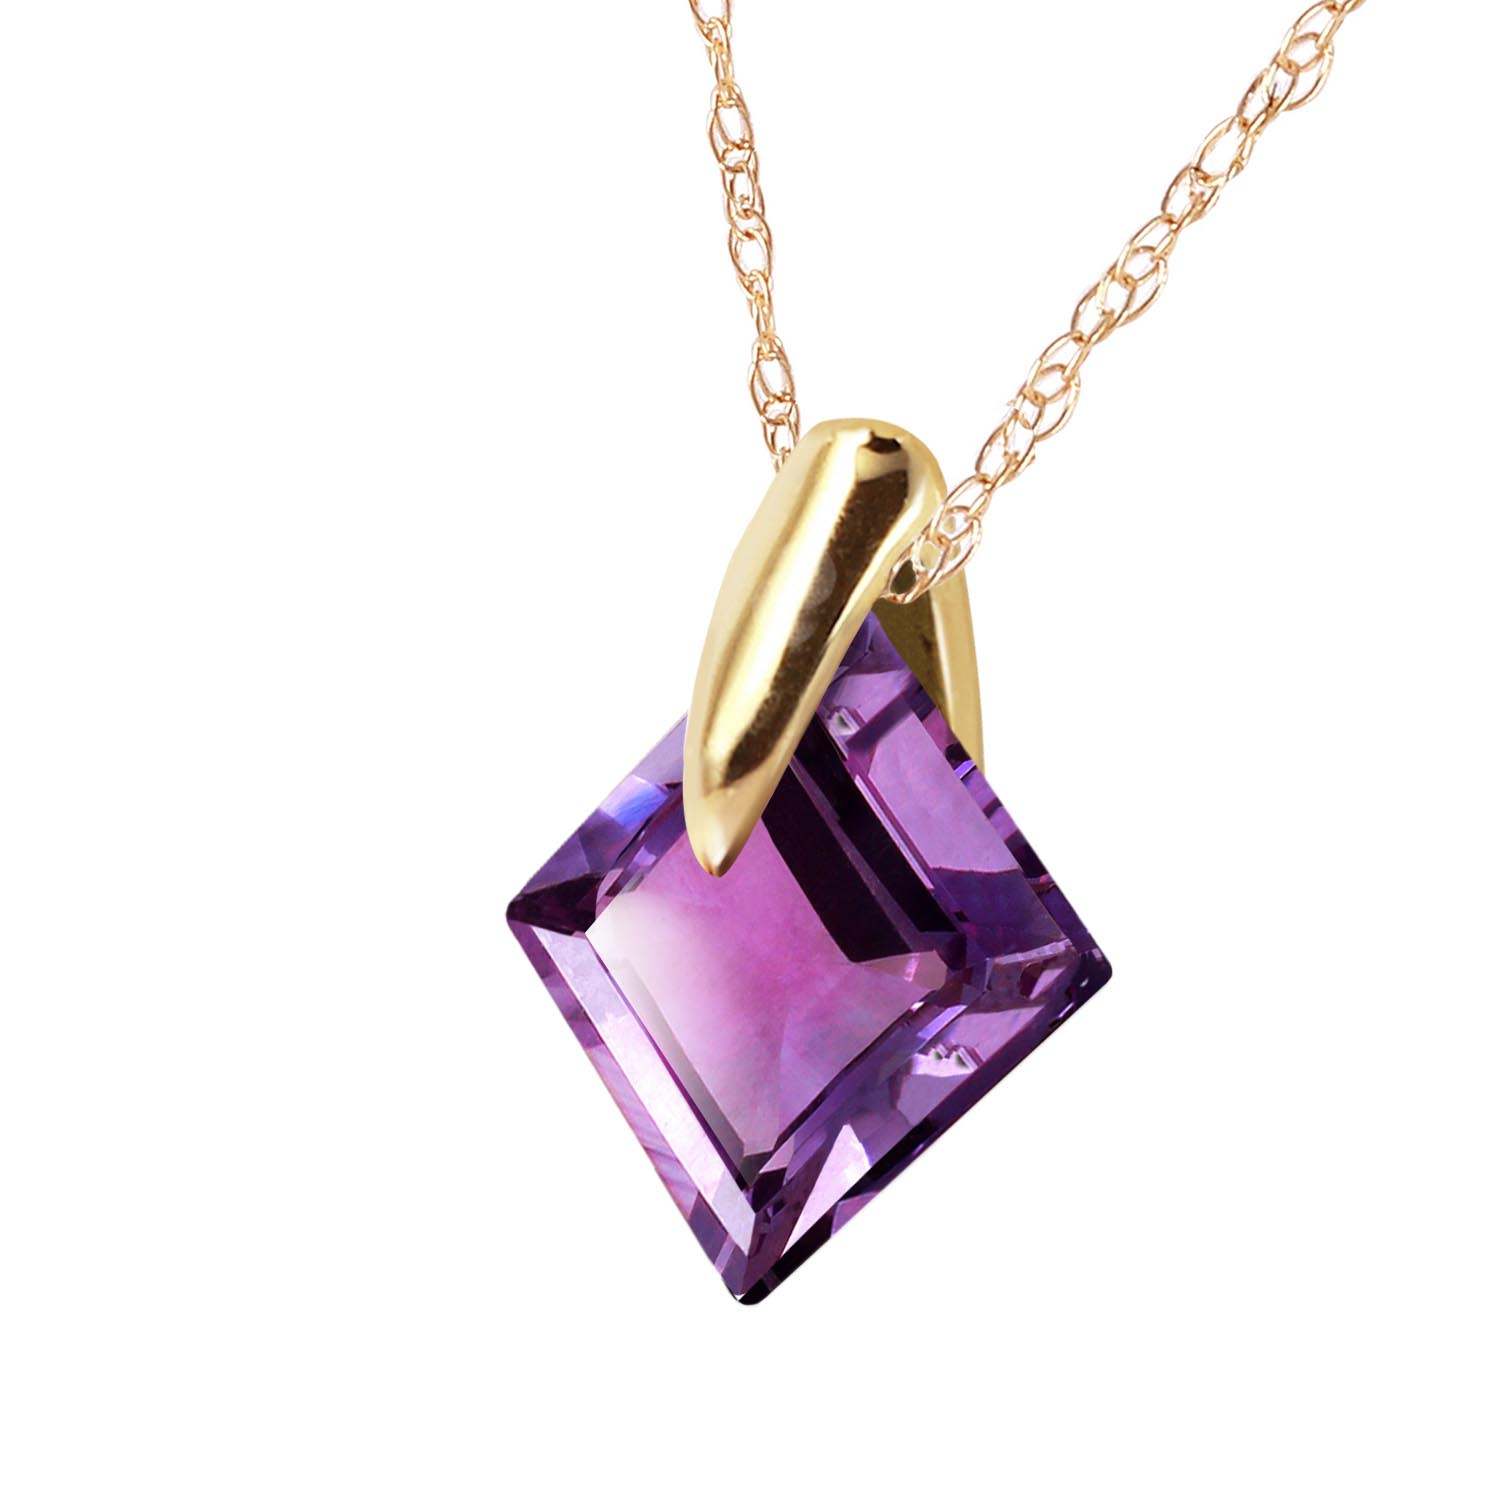 Square Cut Amethyst Pendant Necklace 1.16ct in 9ct Gold